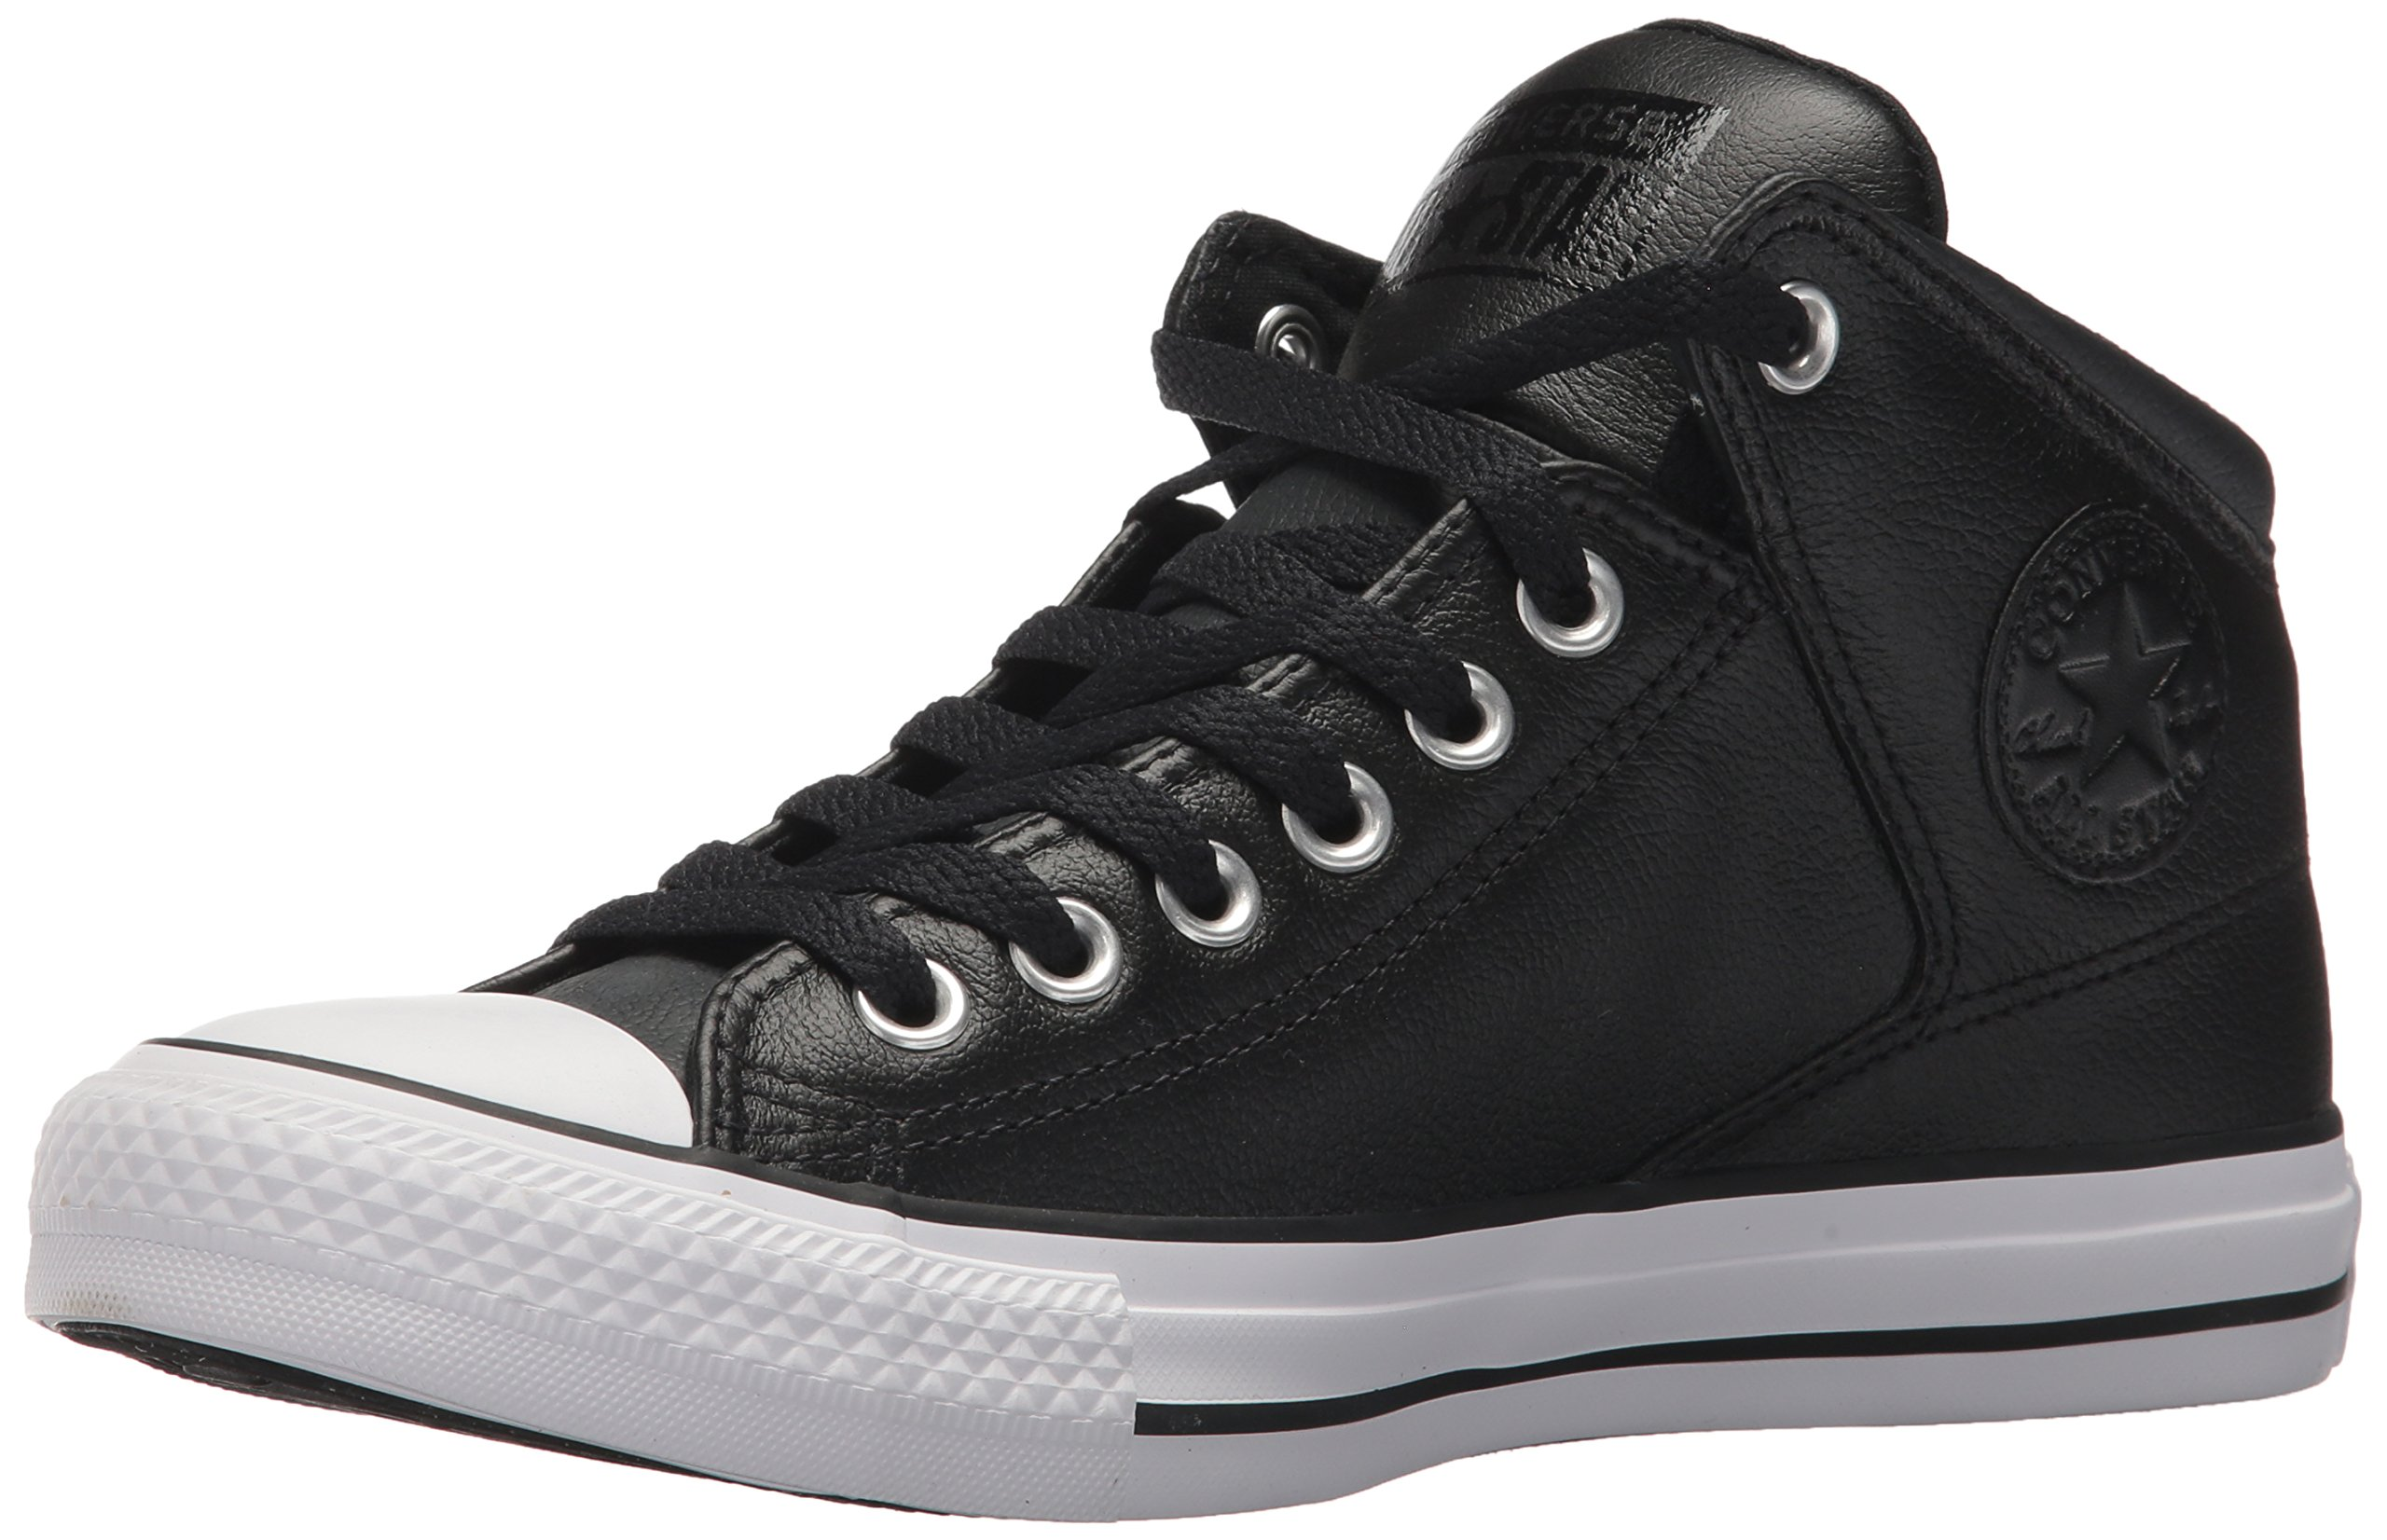 Converse Men's Street Leather High Top